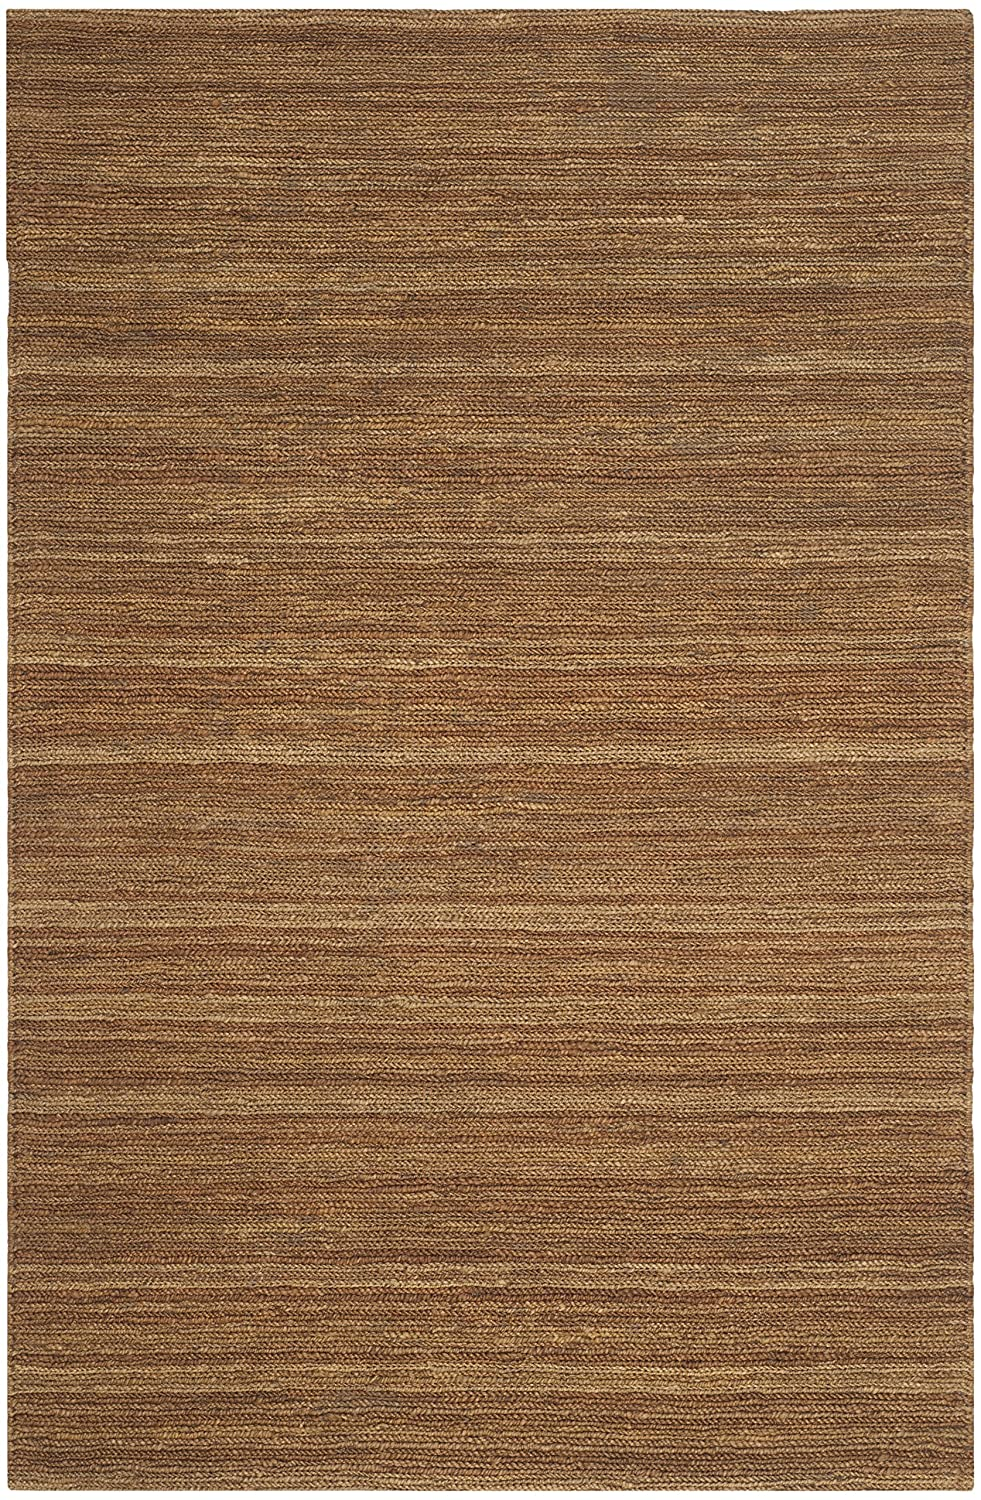 Safavieh Organic Collection ORG114A Natural and Gold Jute Rug 2/' x 3/'